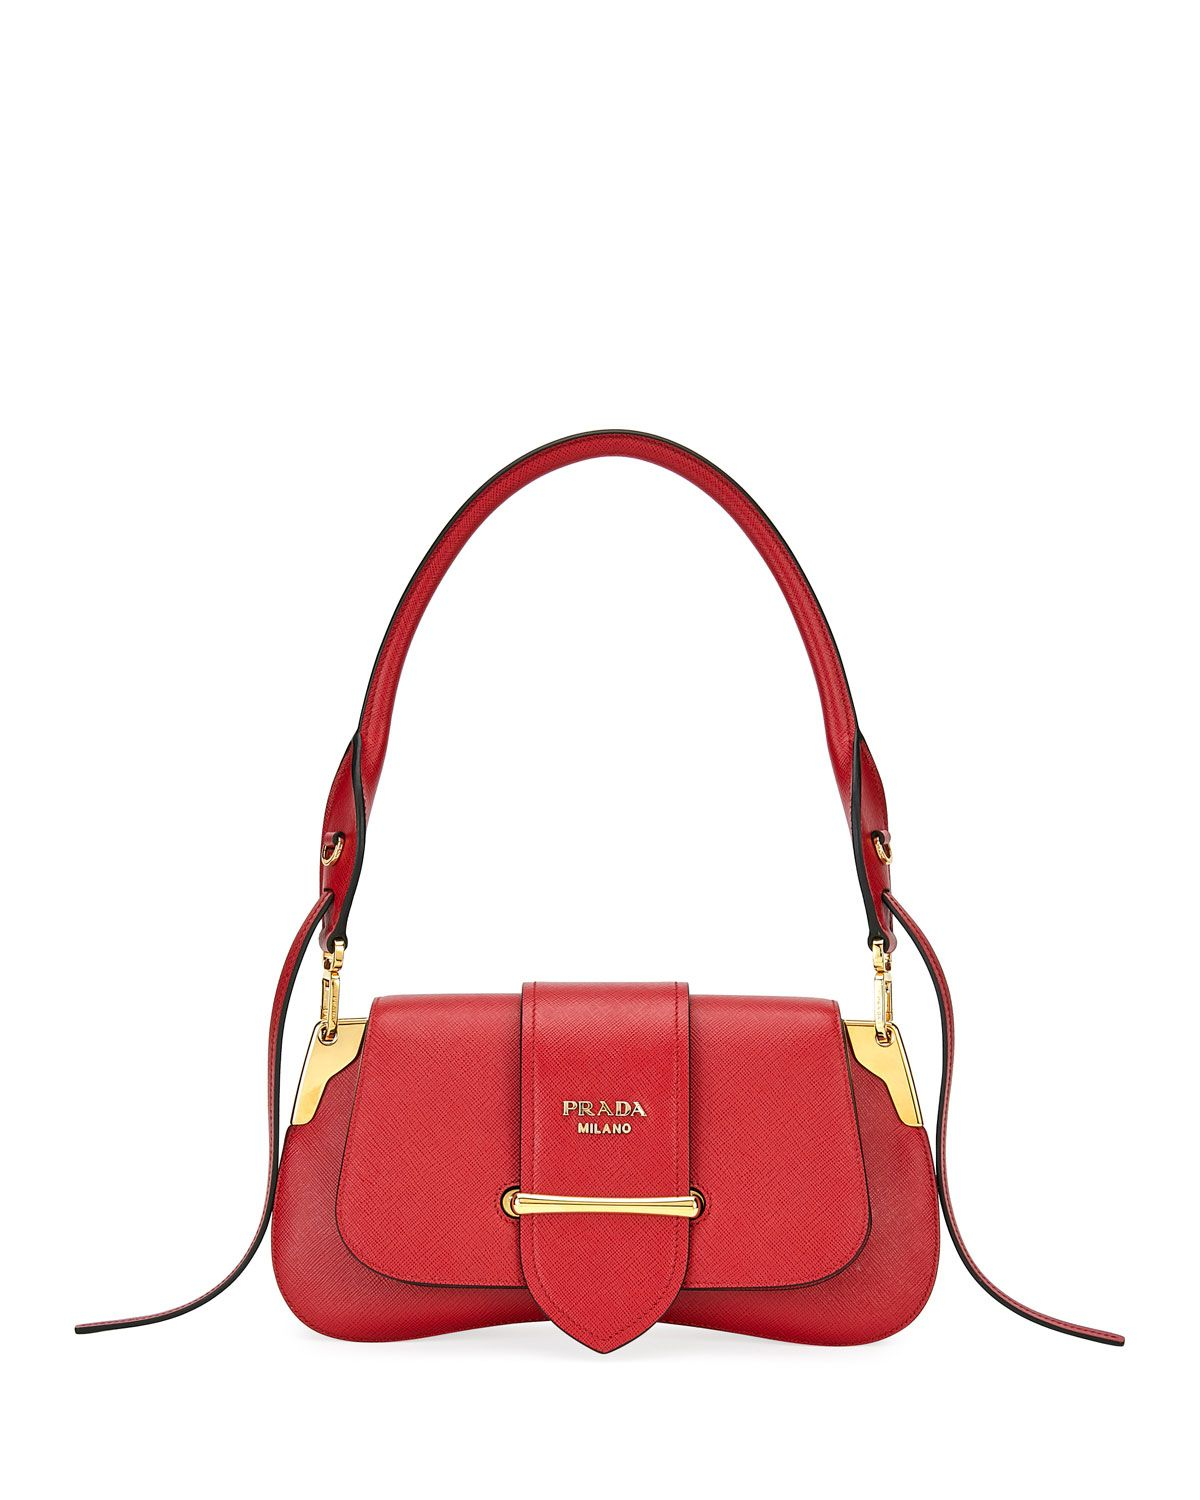 prada-sidonie-red-leather-bag